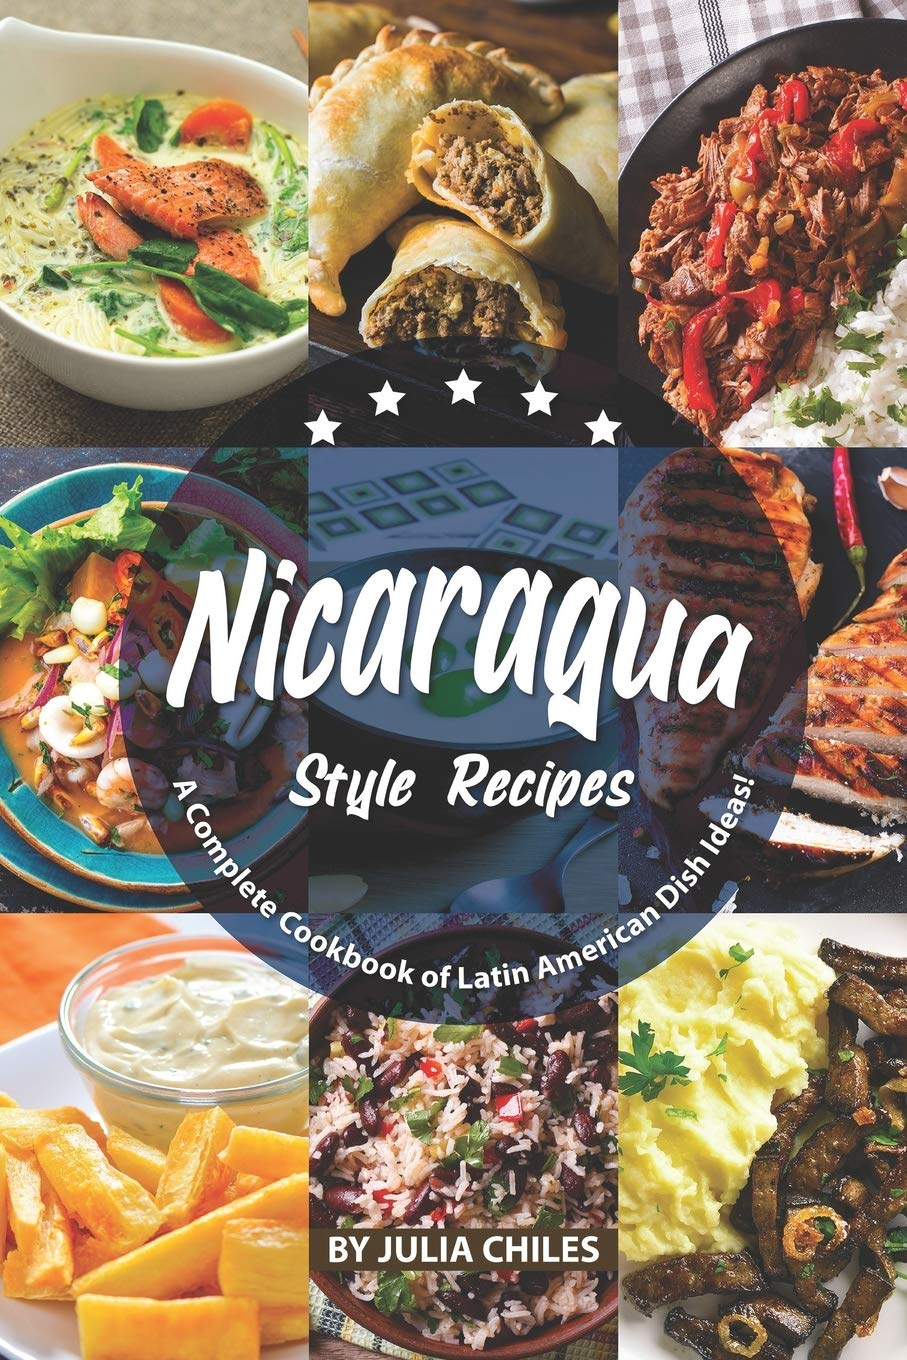 Nicaragua Style Recipes  A Complete Cookbook Of Latin American Dish Ideas